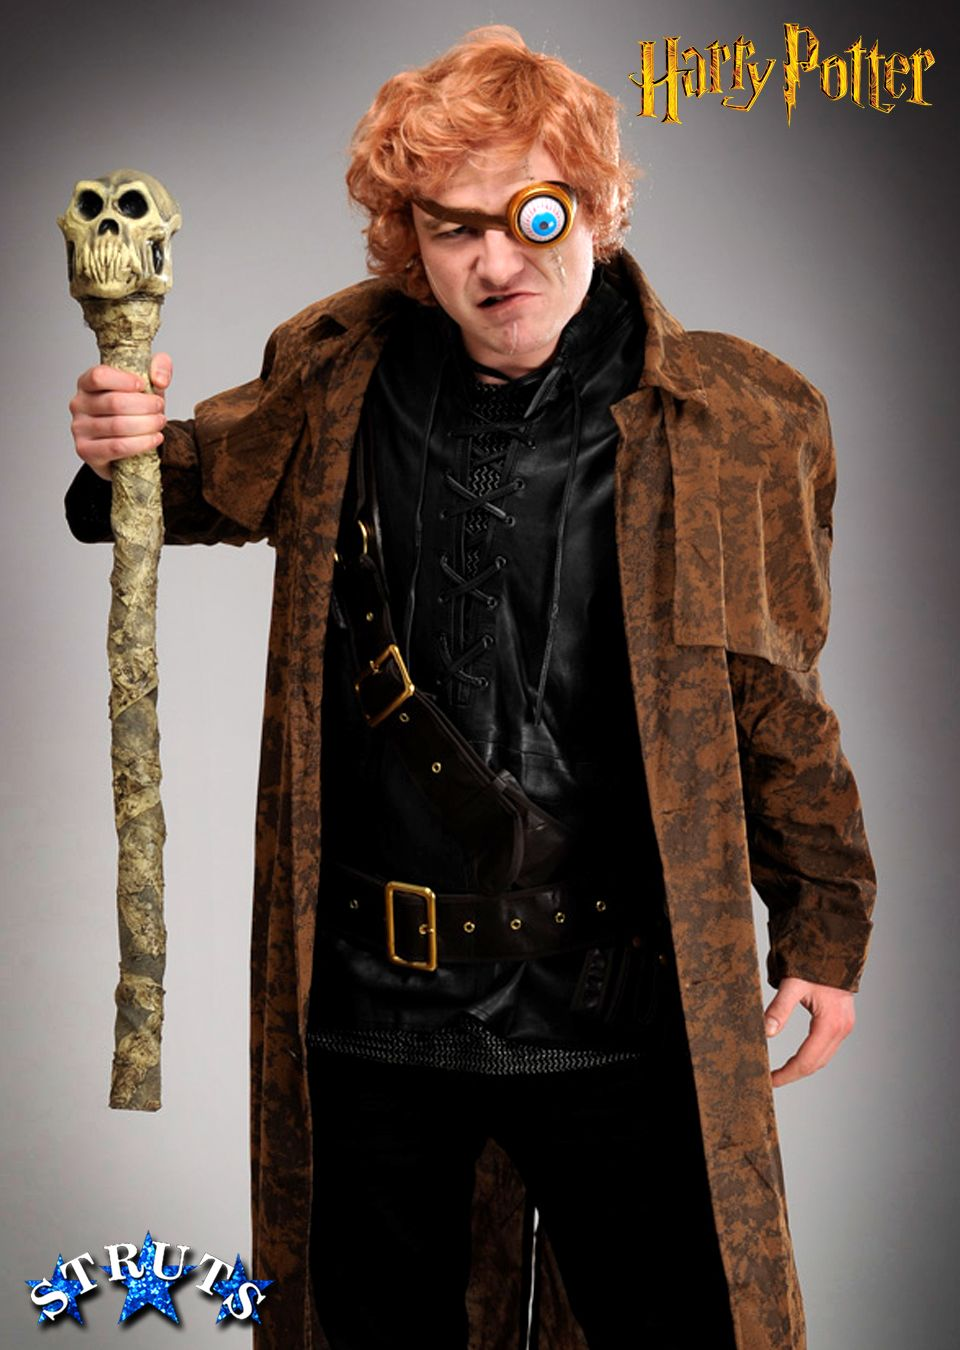 Deluxe Mad Eye Moody Costume from Harry Potter, includes